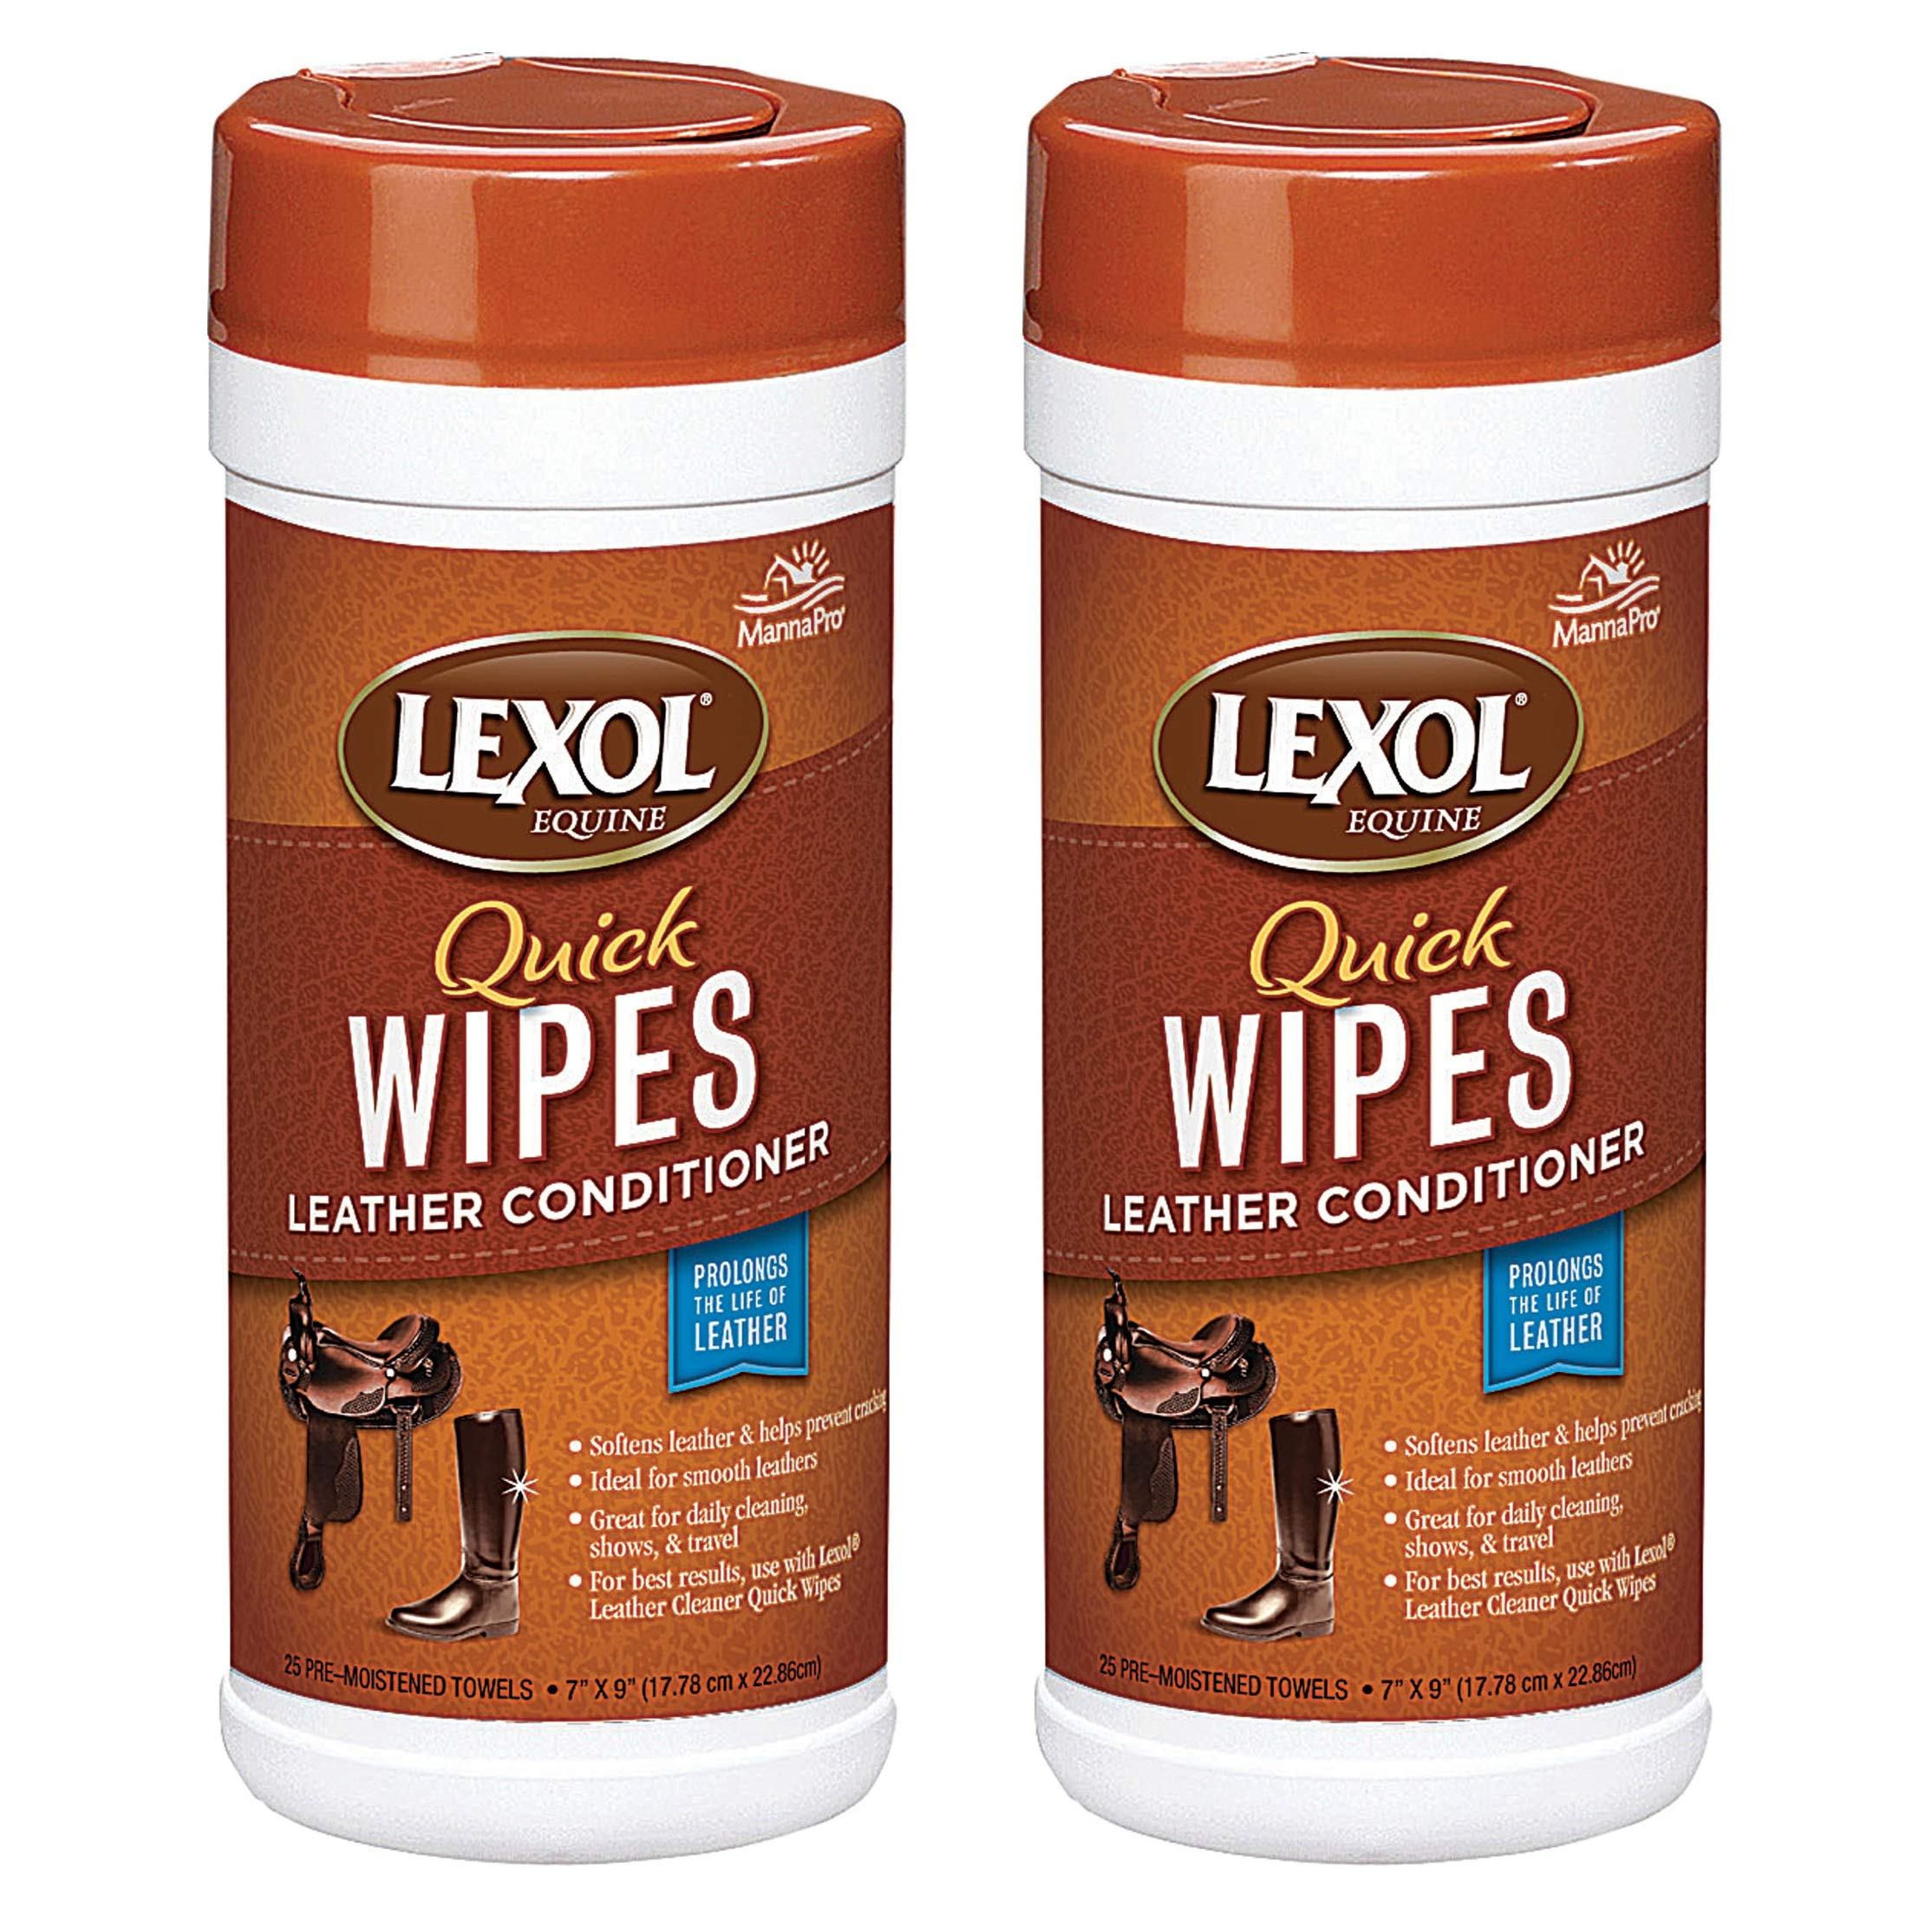 Lexol Equine Quick Wipes Leather Conditioner, 25 Count (2 Pack - 25 Count)